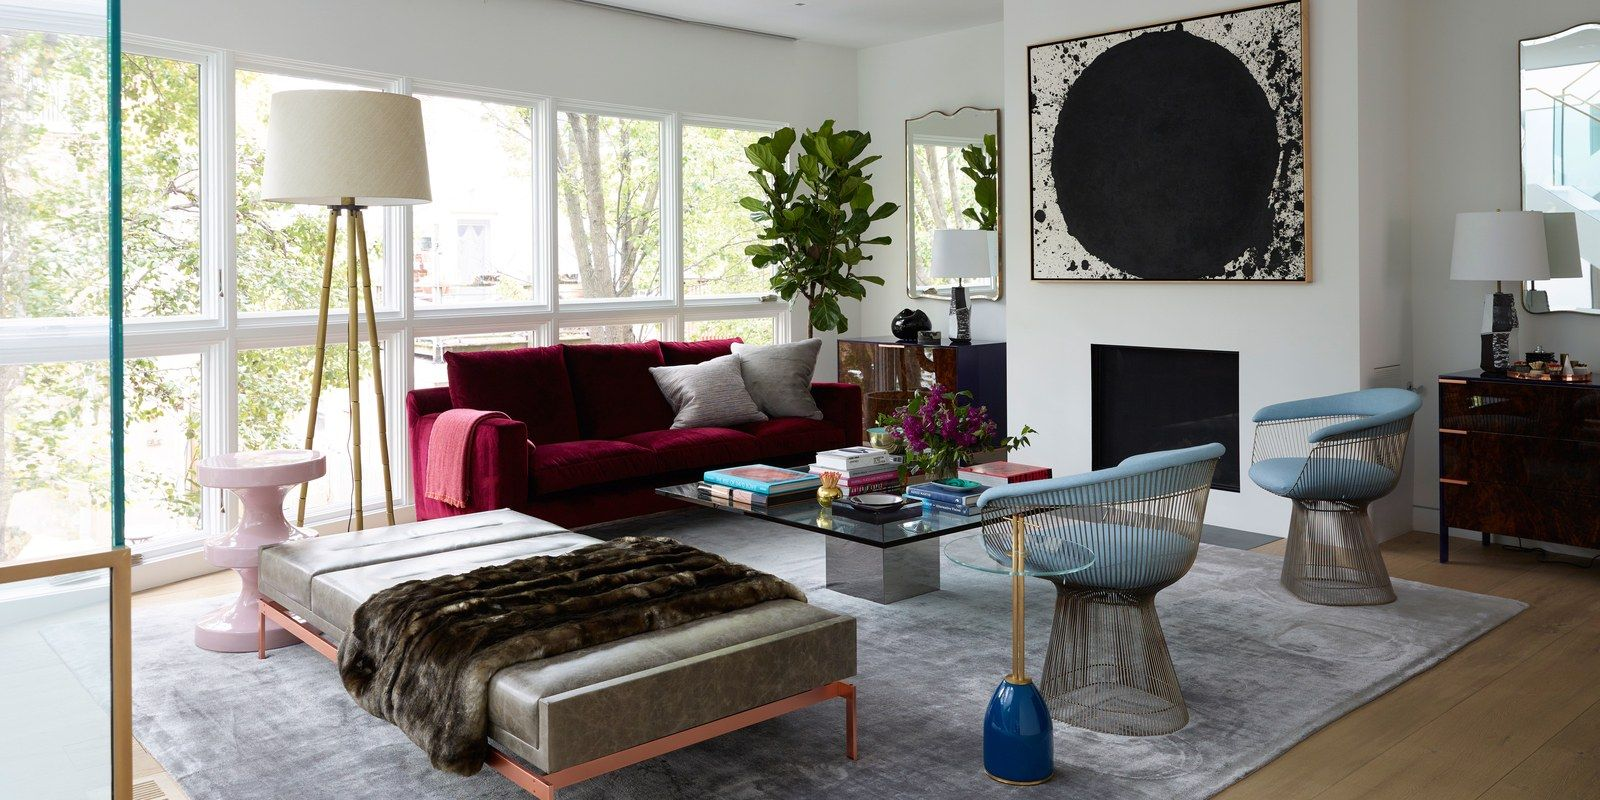 Every Inch of This Polished Philadelphia Townhouse Is Highly Customized is part of Living Room Couch Red - Interior designer Mona Ross Berman began with a blank slate and filled this Society Hill home with bespoke touches